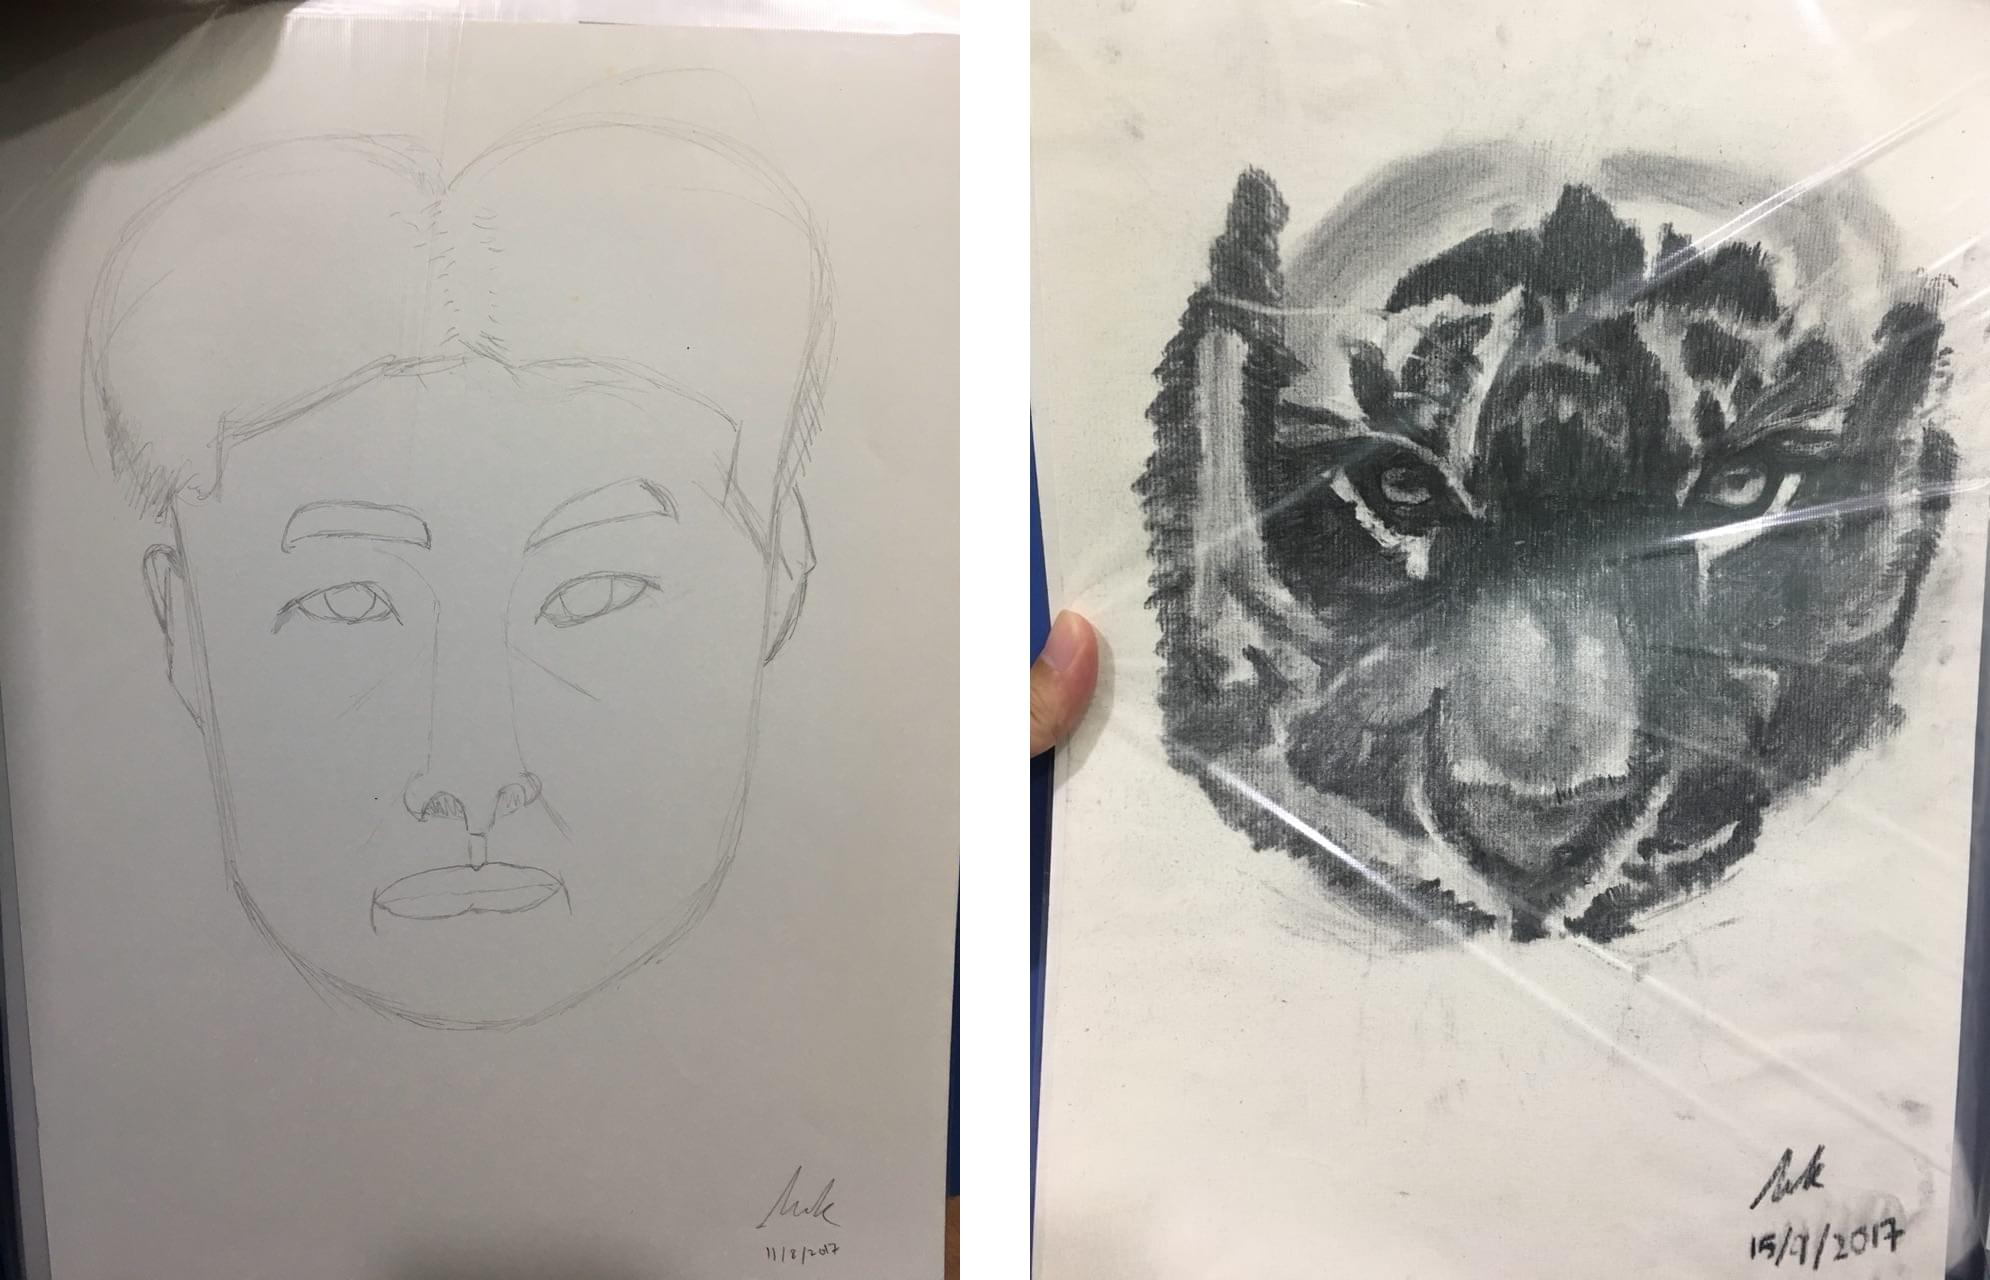 Left: Zell's drawing of his face (that doesn't look anything like a face). Right: Zell's drawing of a tiger.